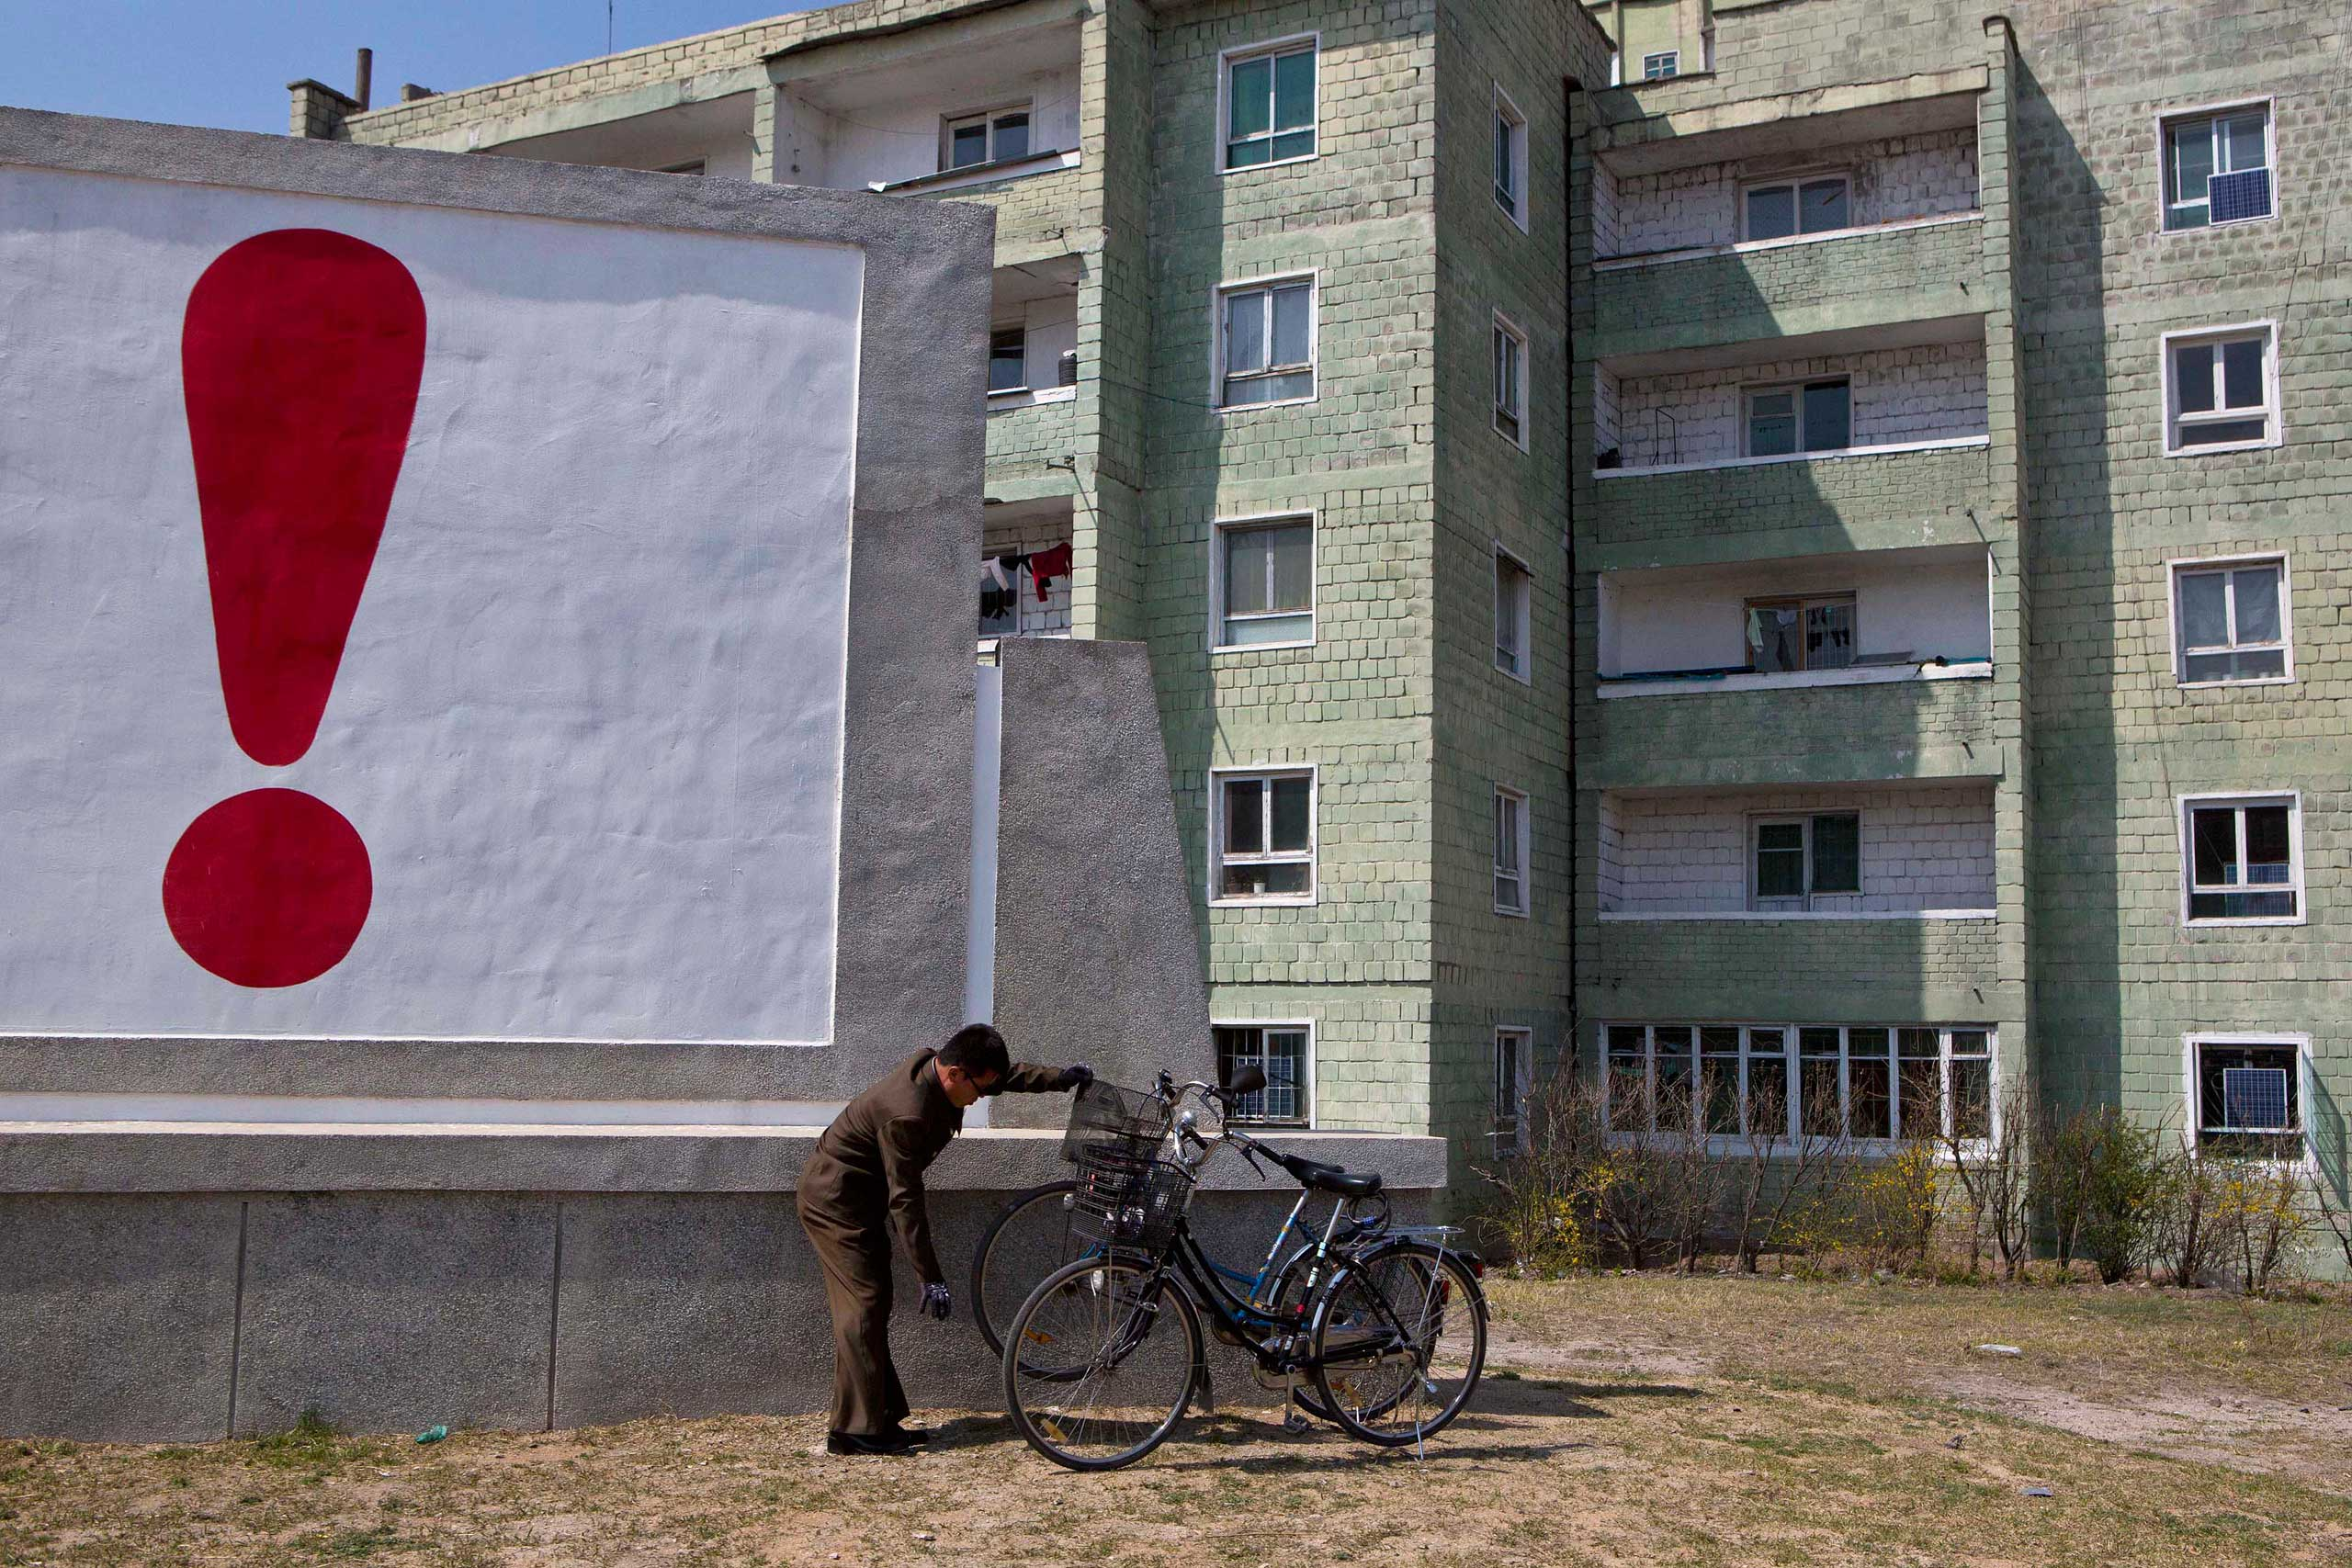 April 24, 2013. A North Korean man checks his bicycle next to a painted exclamation point on a propaganda billboard in Kaesong, North Korea.